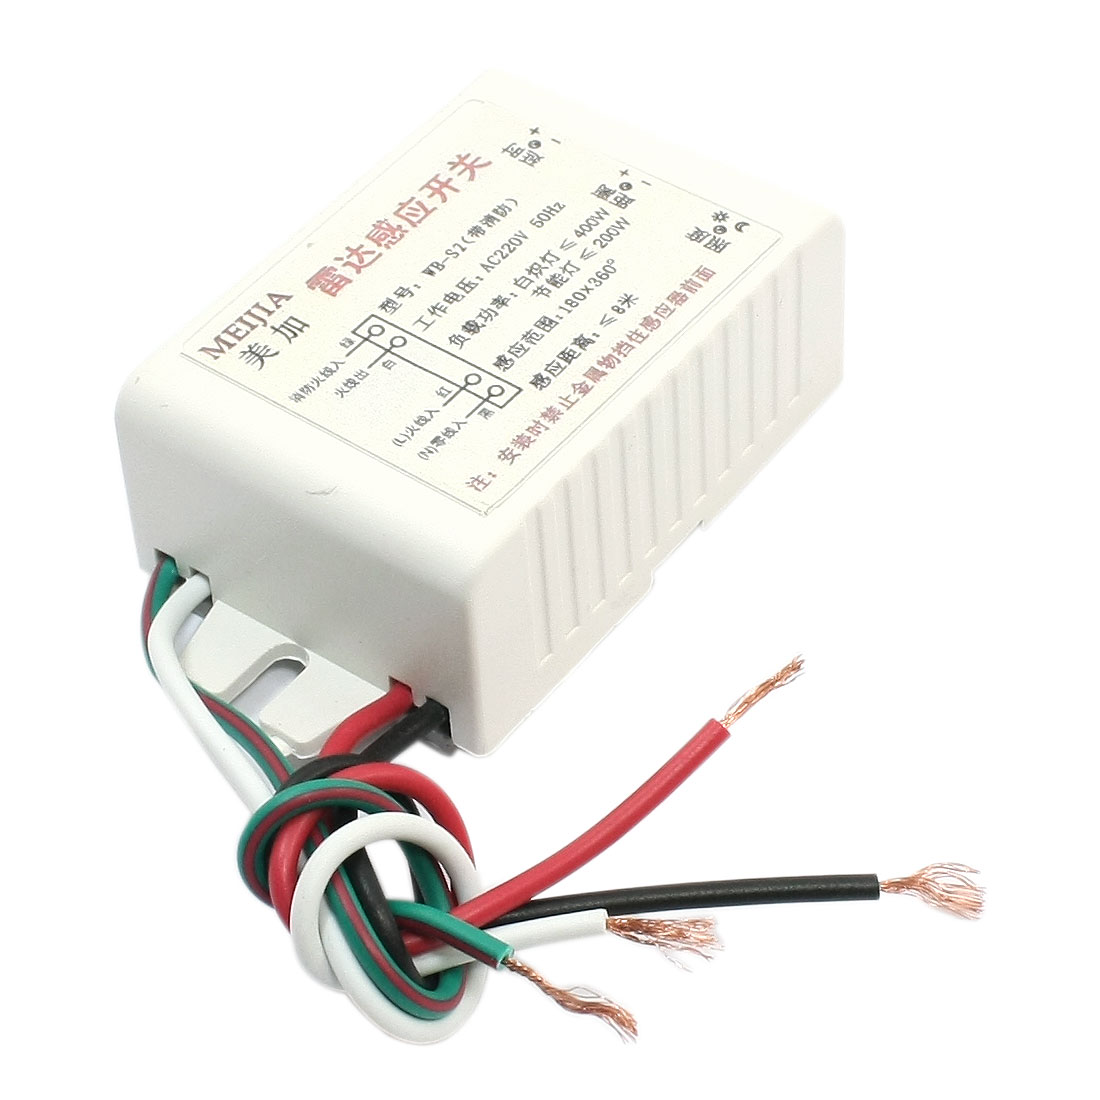 AC220V 8M 4-Wire Connecting White Plastic Case Wall Mounting Human Moving Automatic ON/OFF Lamp Delay Sensor Switch